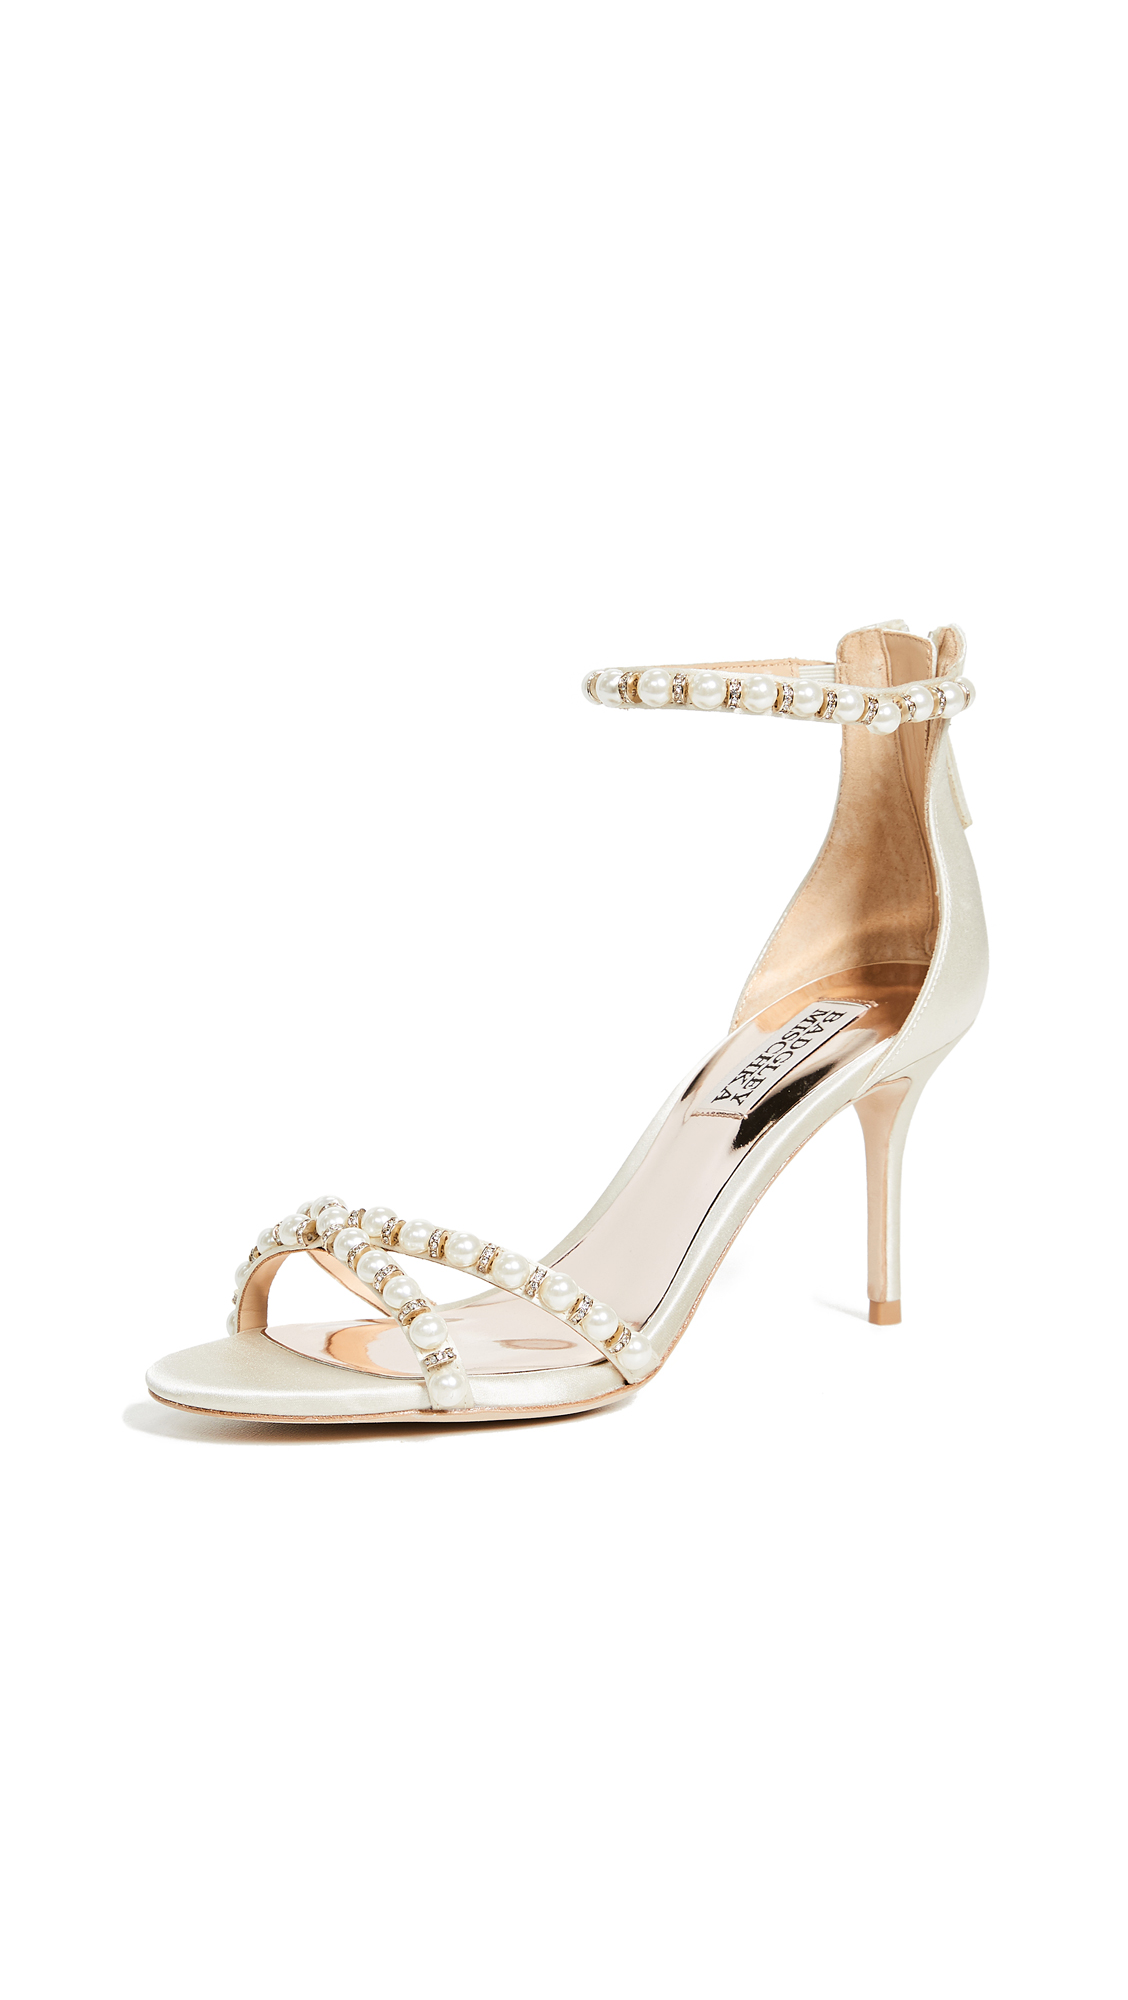 Badgley Mischka Hannah Imitation Pearl Sandals - Ivory